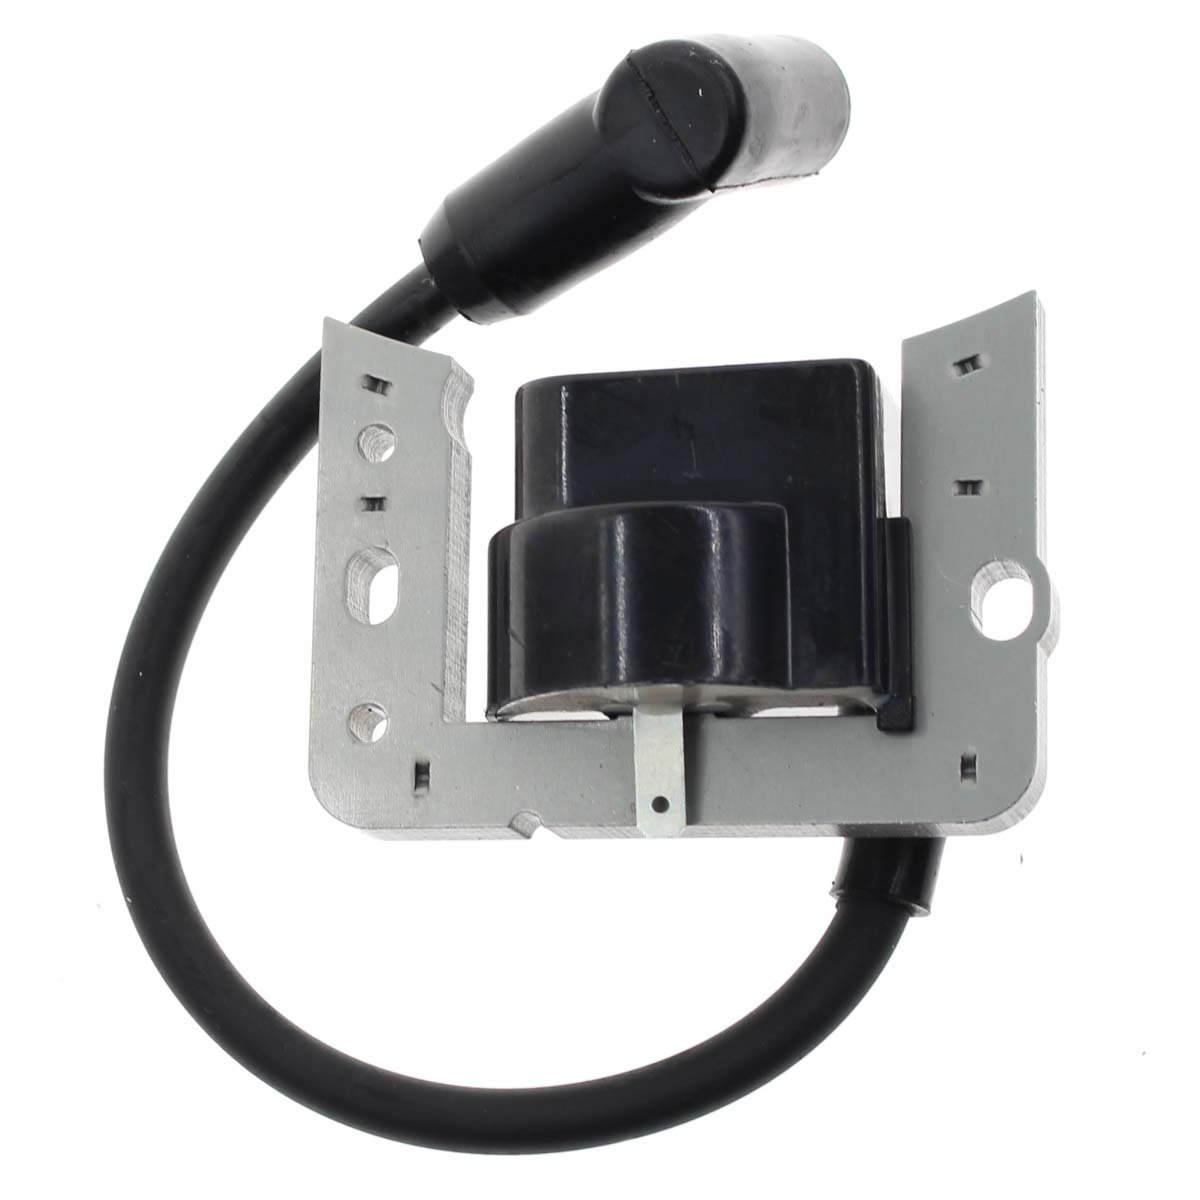 Ignition Coil for TECUMSEH 34443 34443A 34443B 34443C 34443D Ignition Coil Solid State Module